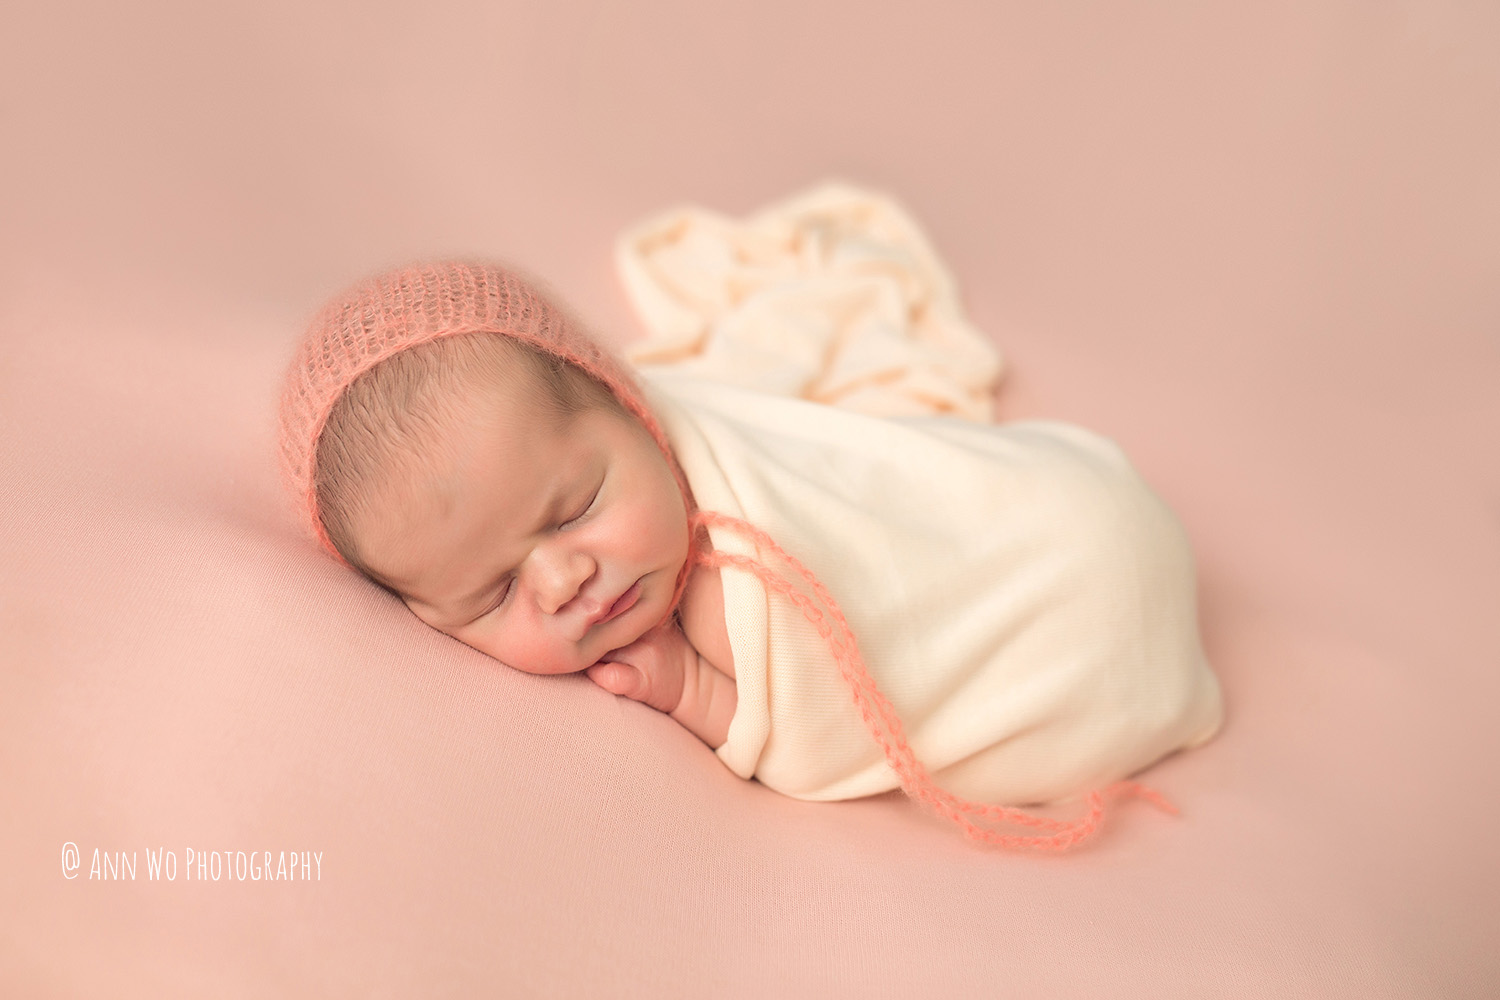 newborn-baby-photography-london-lifestyle-ann-wo-003.JPG